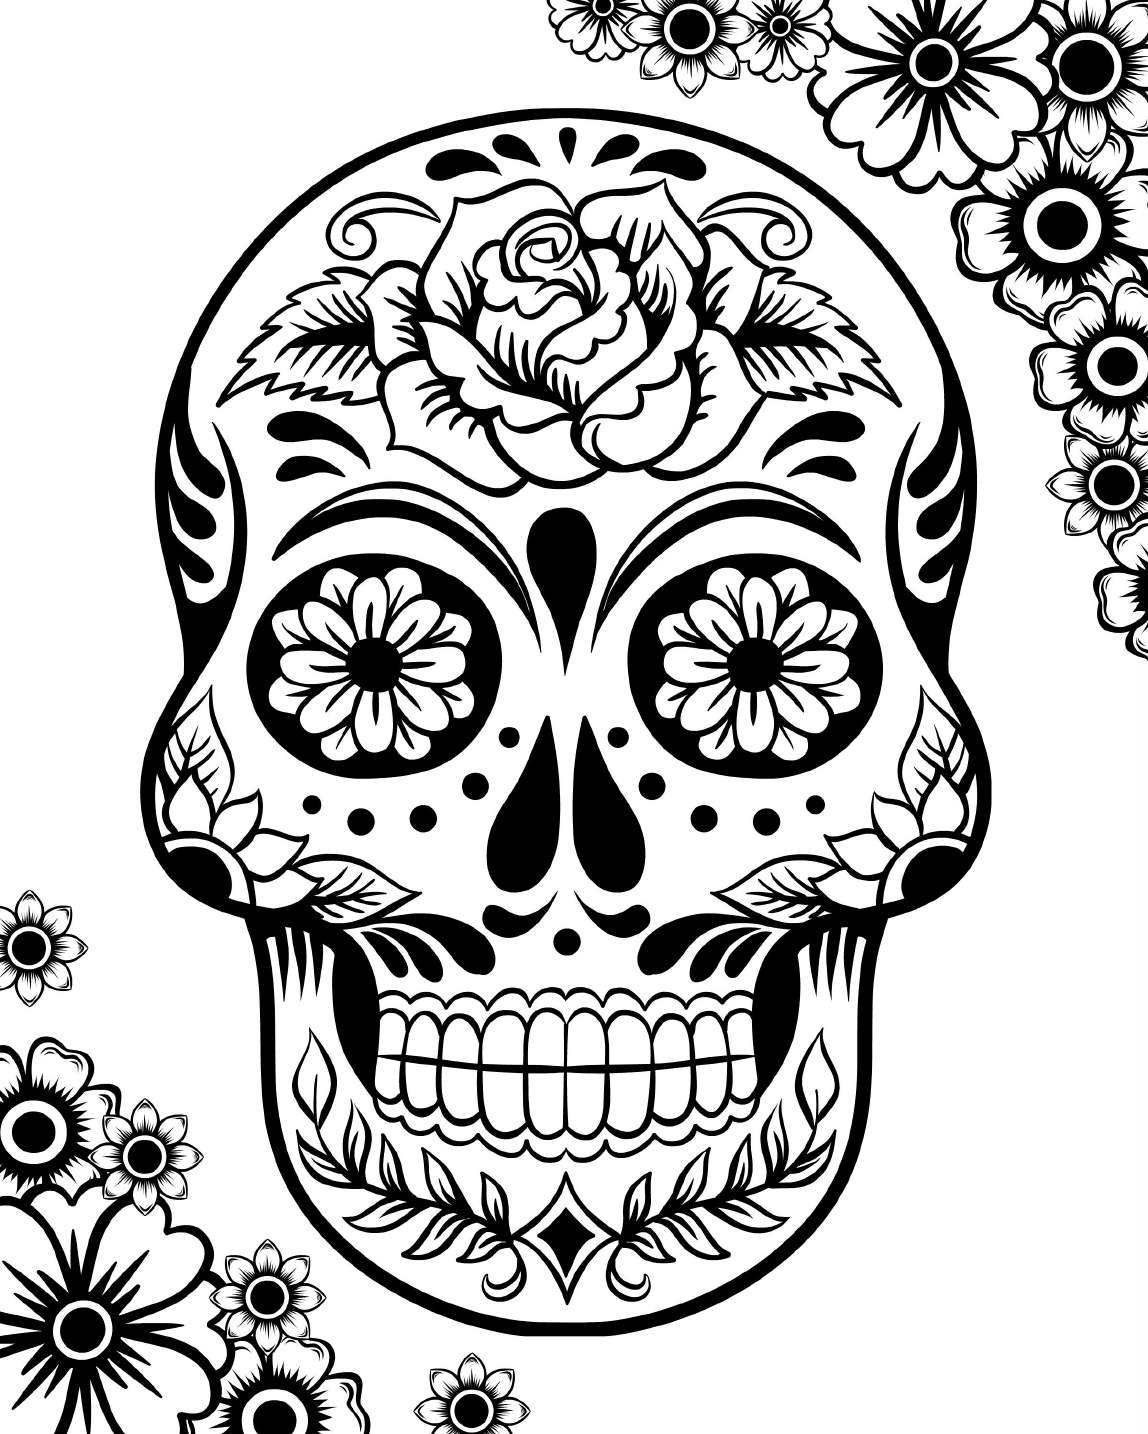 Free Printable Day Of The Dead Coloring Pages - Best Coloring